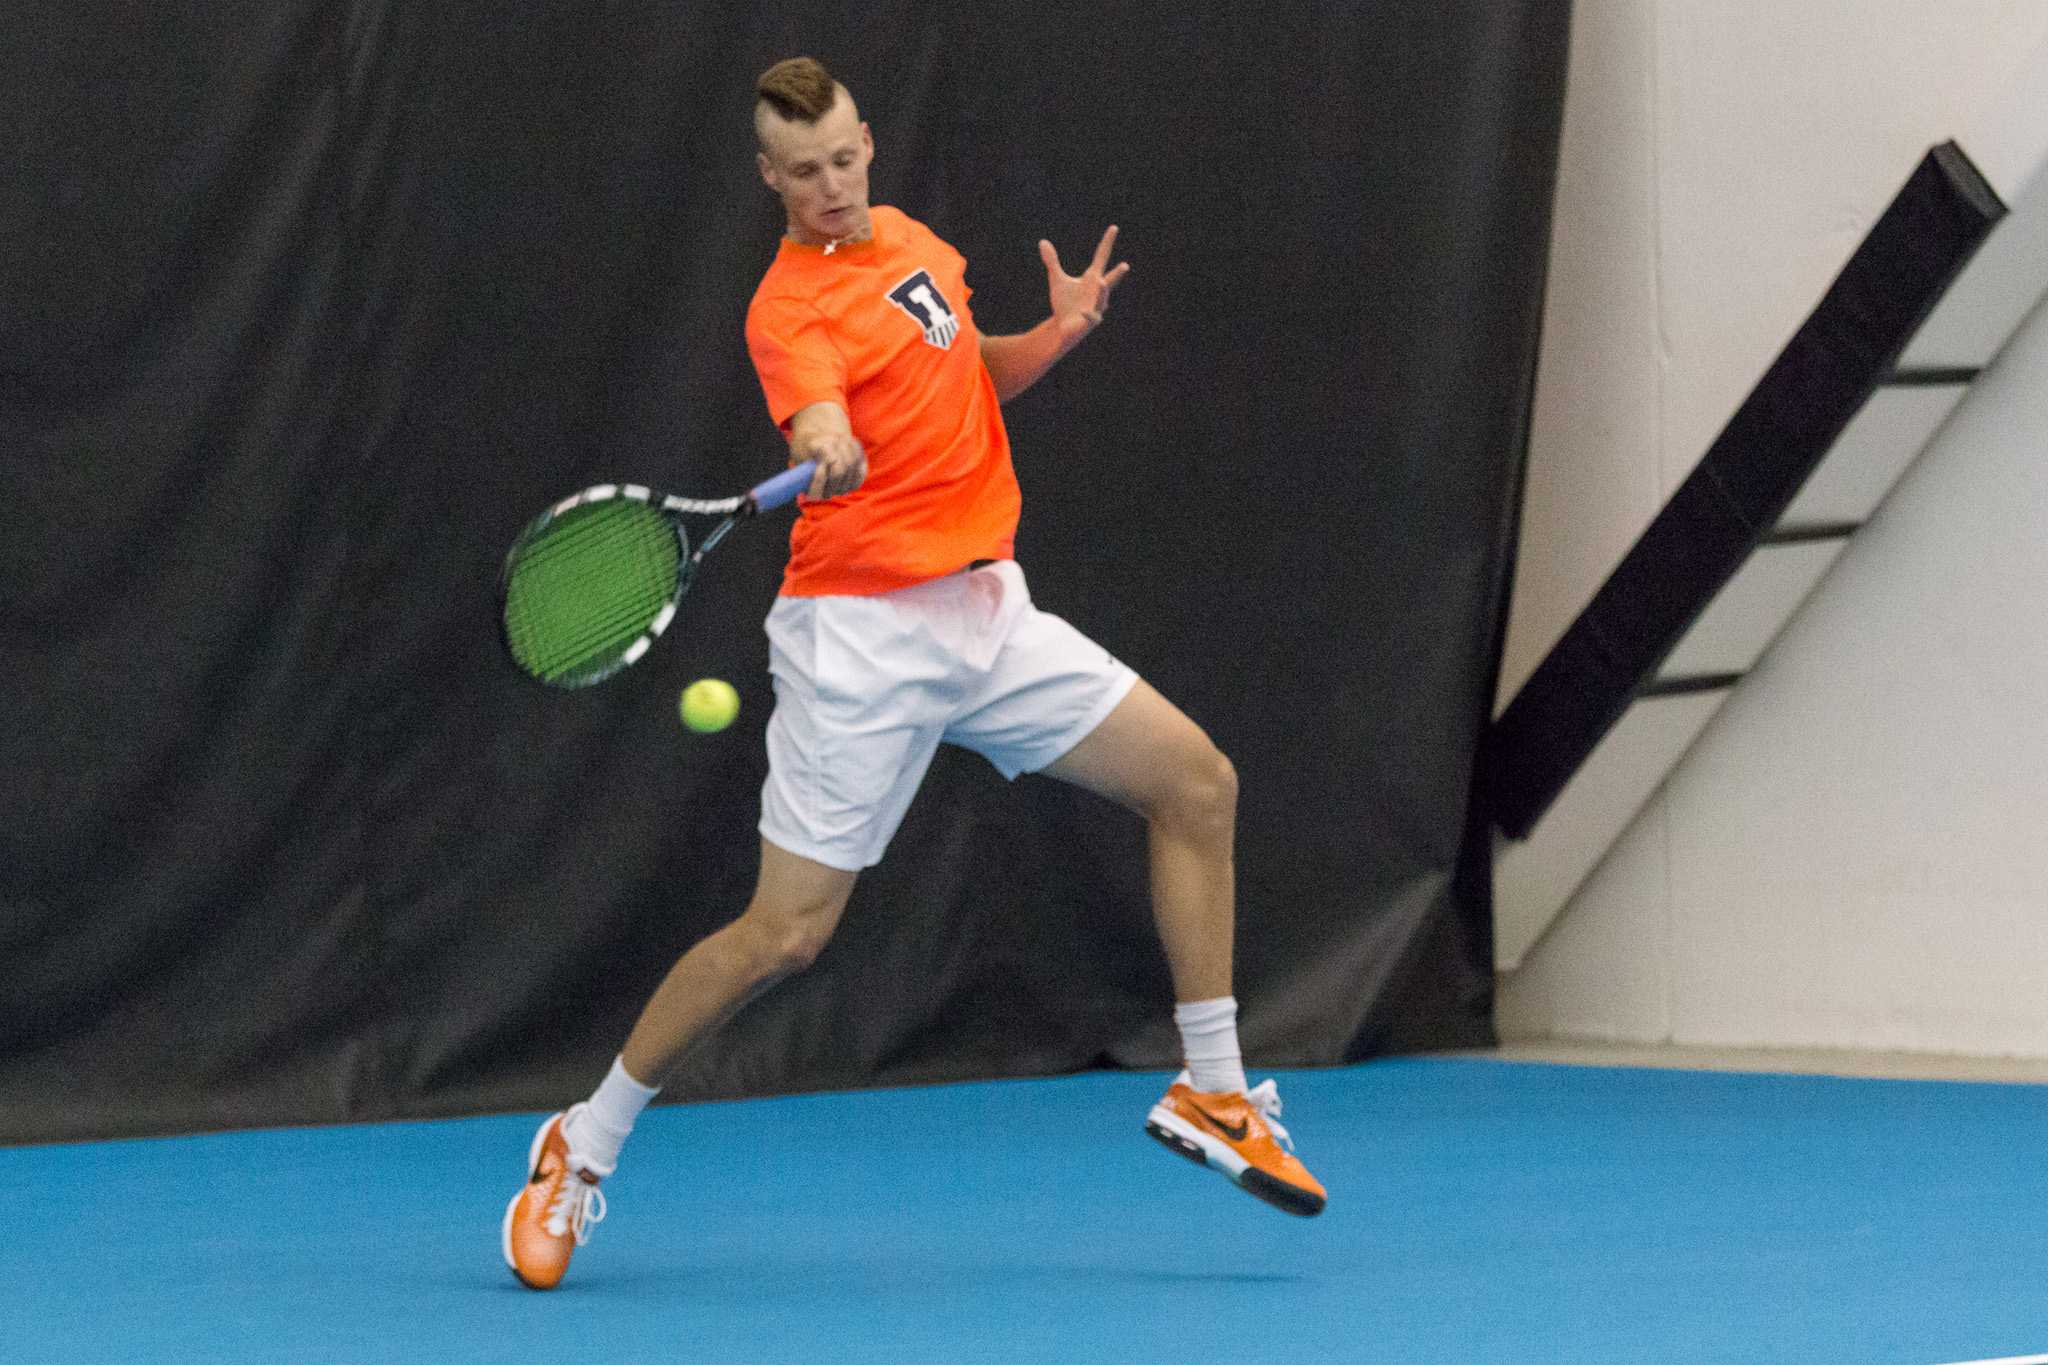 Illinois' Brian Page swings for the ball during the match against Wisconsin at the Atkin's Tennis Center on Sunday, April 3. The Illini won 4-0.